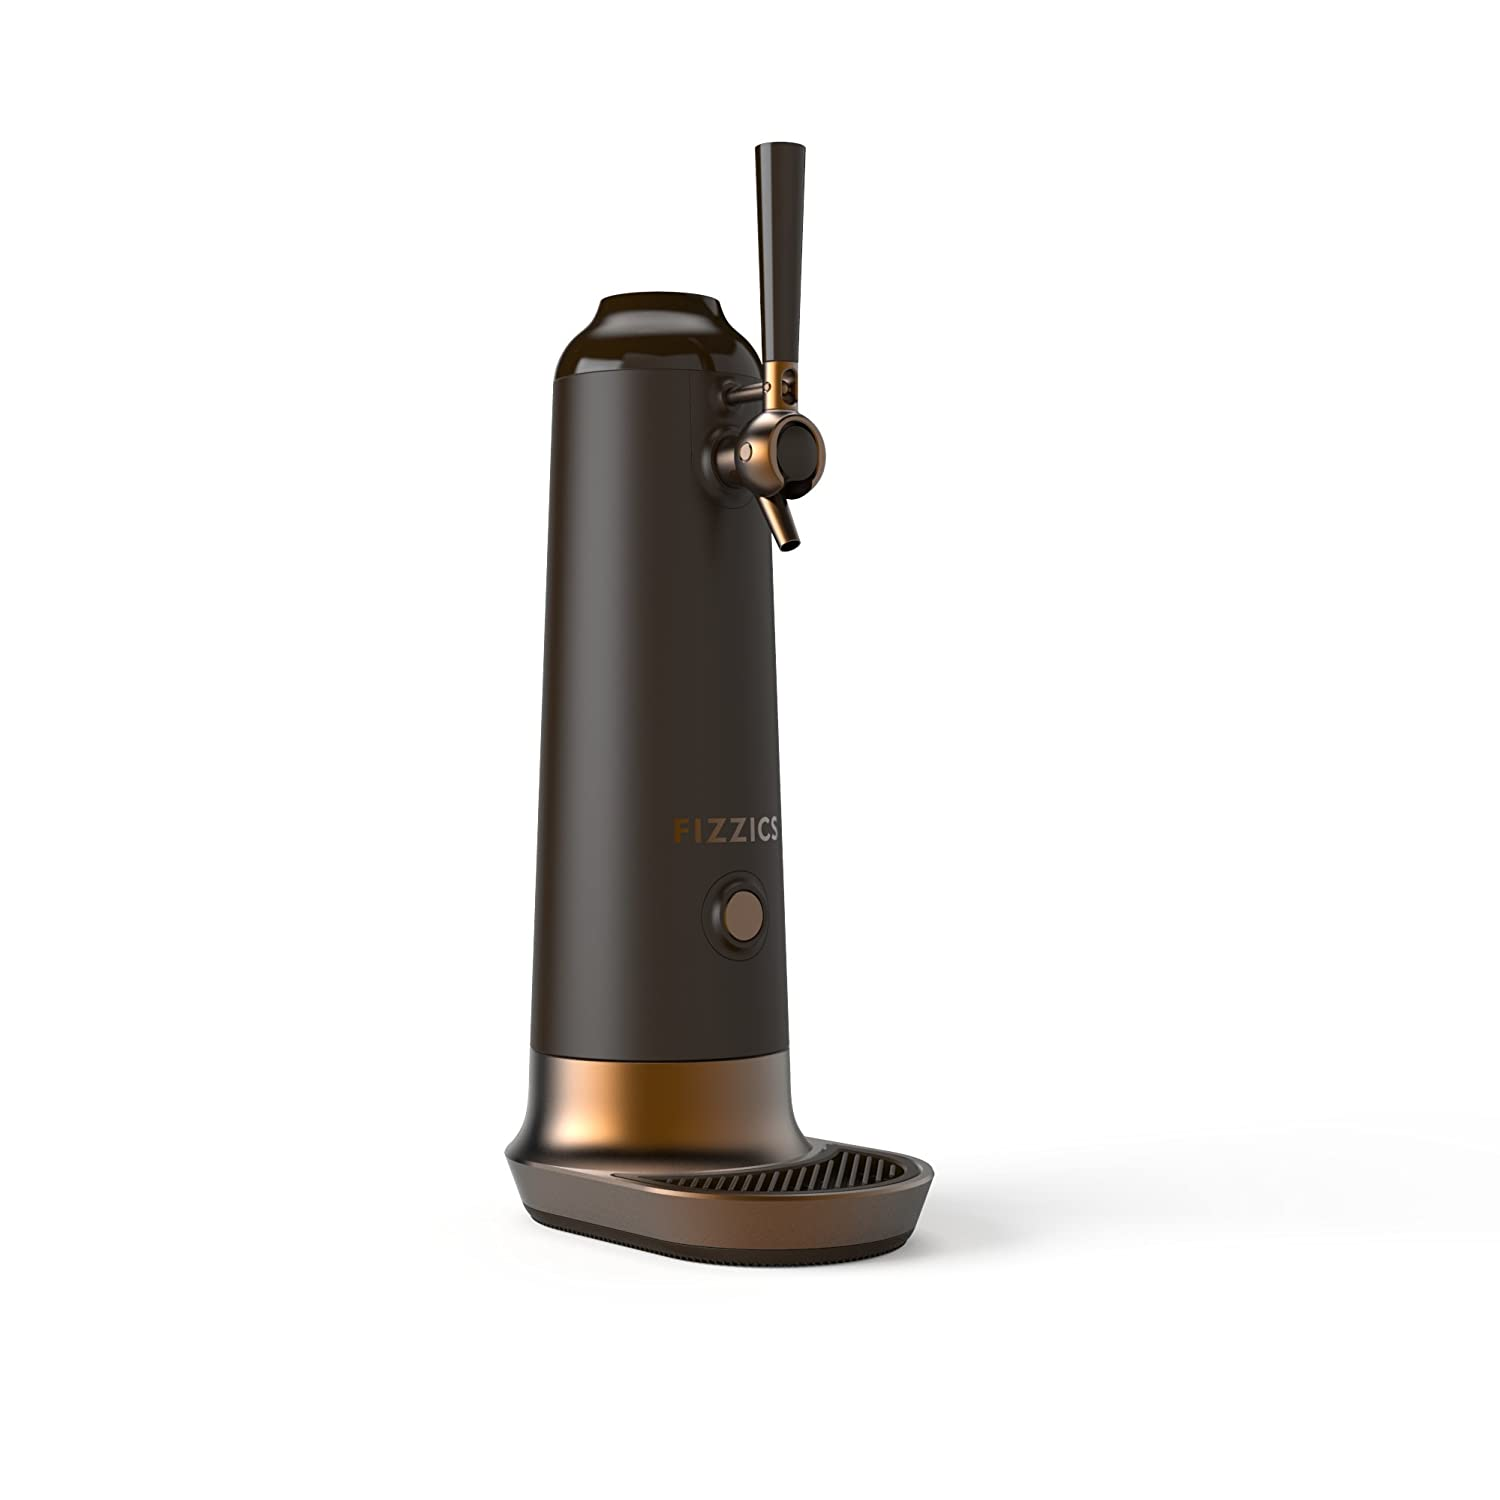 Fizzics Waytap Beer Dispensing Position copper